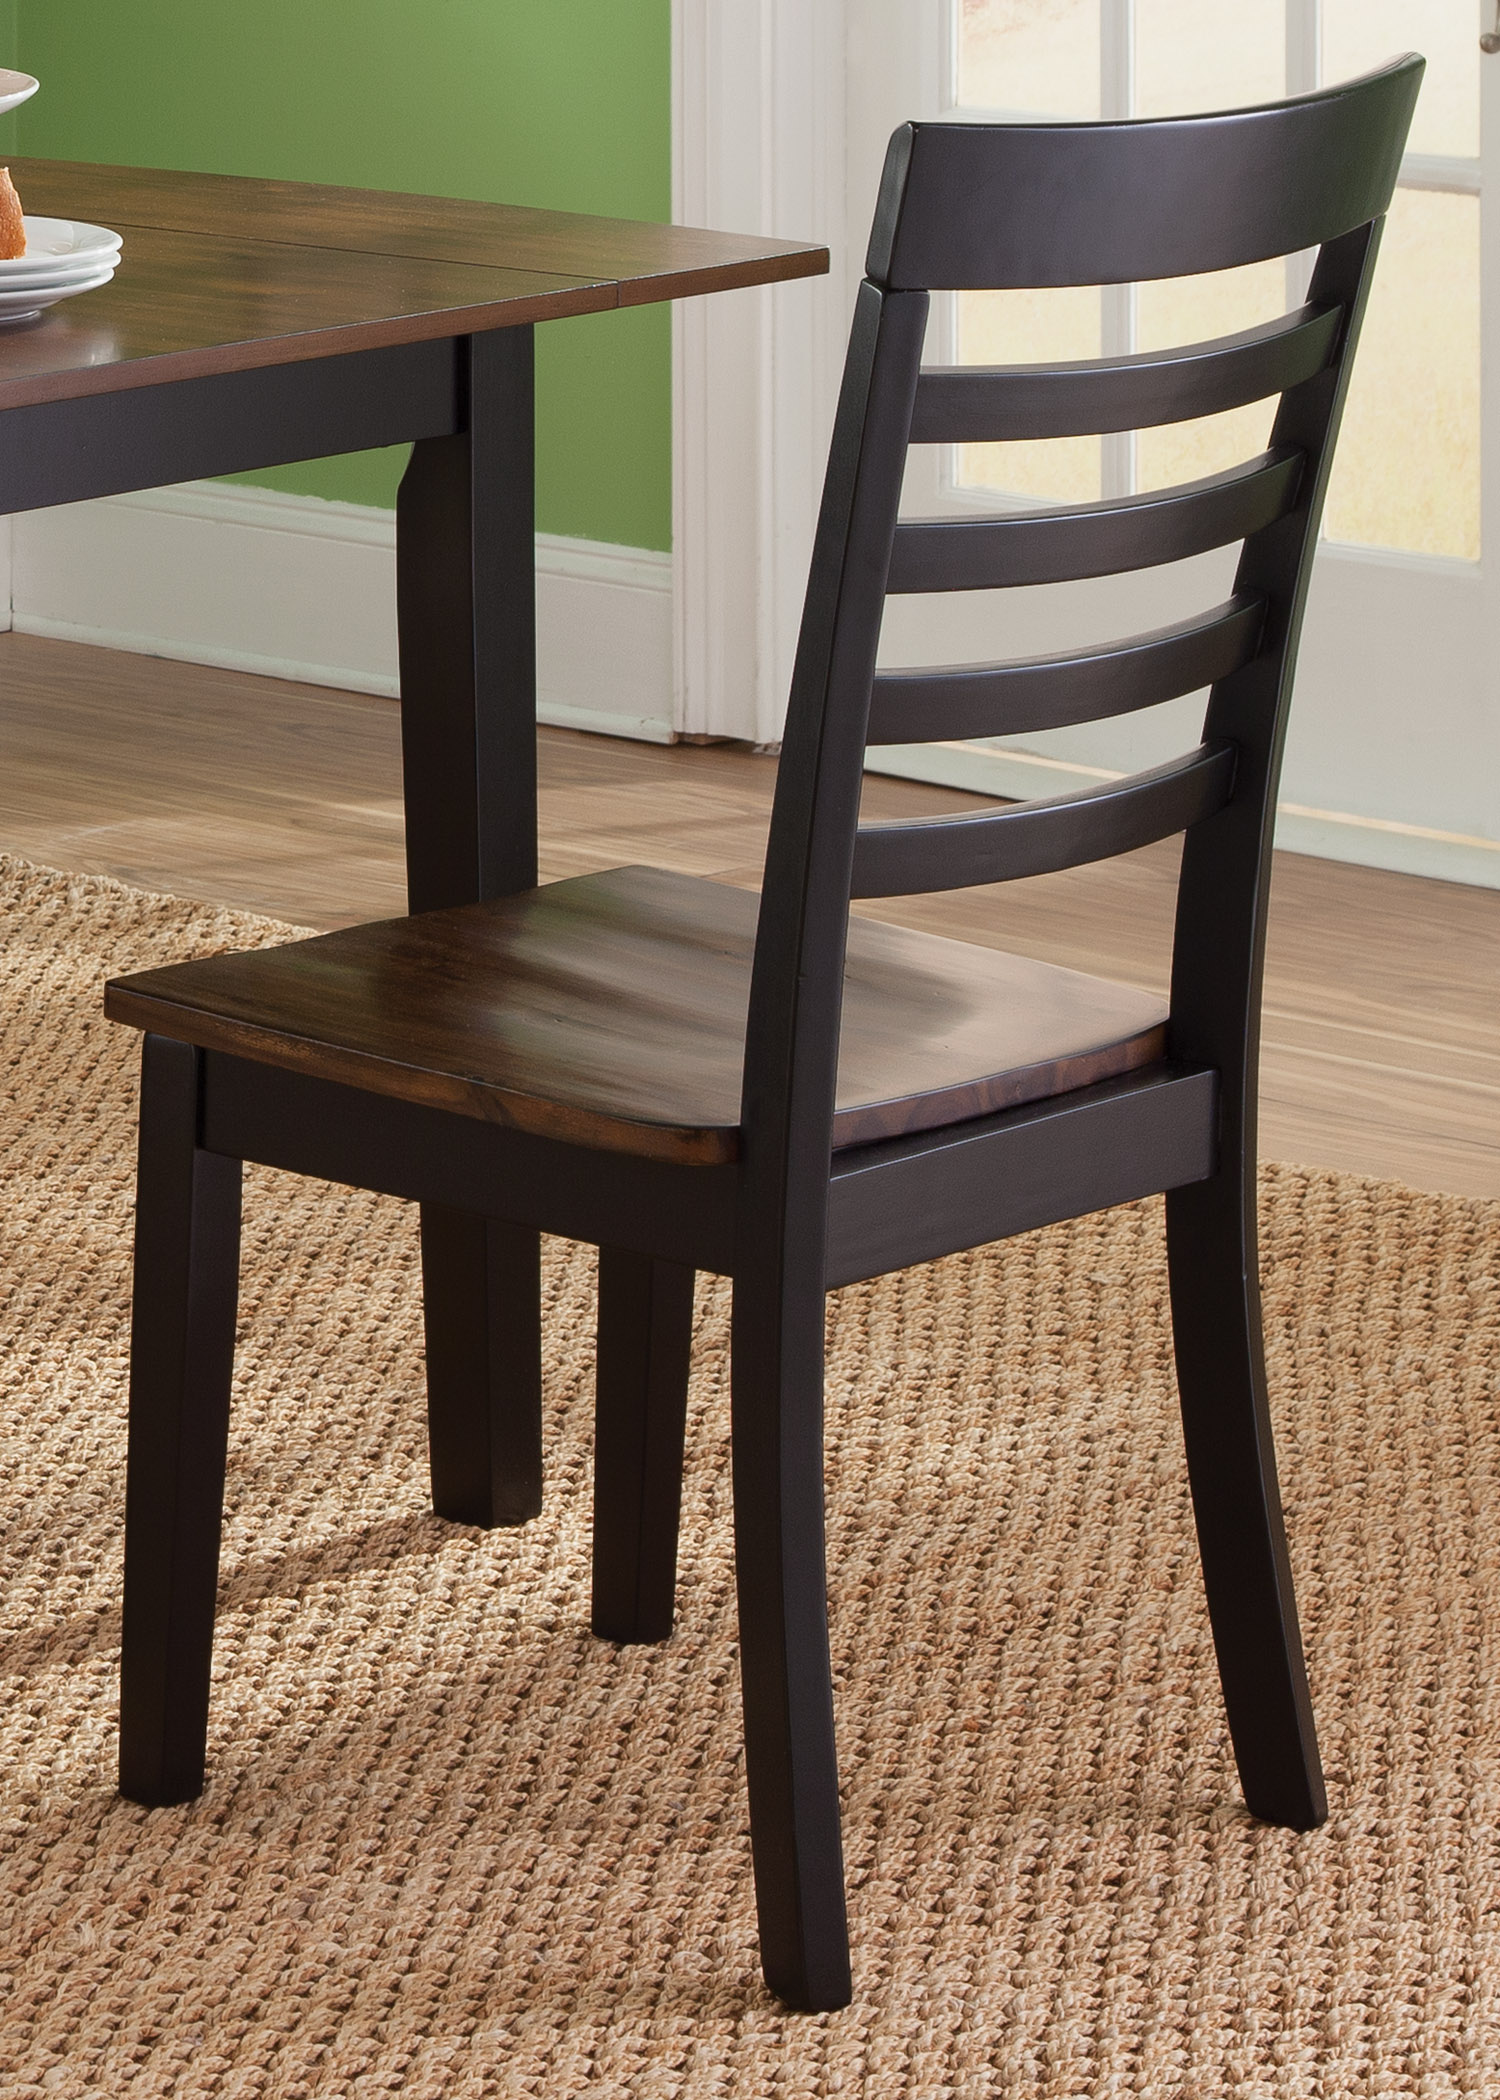 Liberty Furniture Cafe Dining RTA Slat Back Side Chair - Item Number: 56-C160-RTA